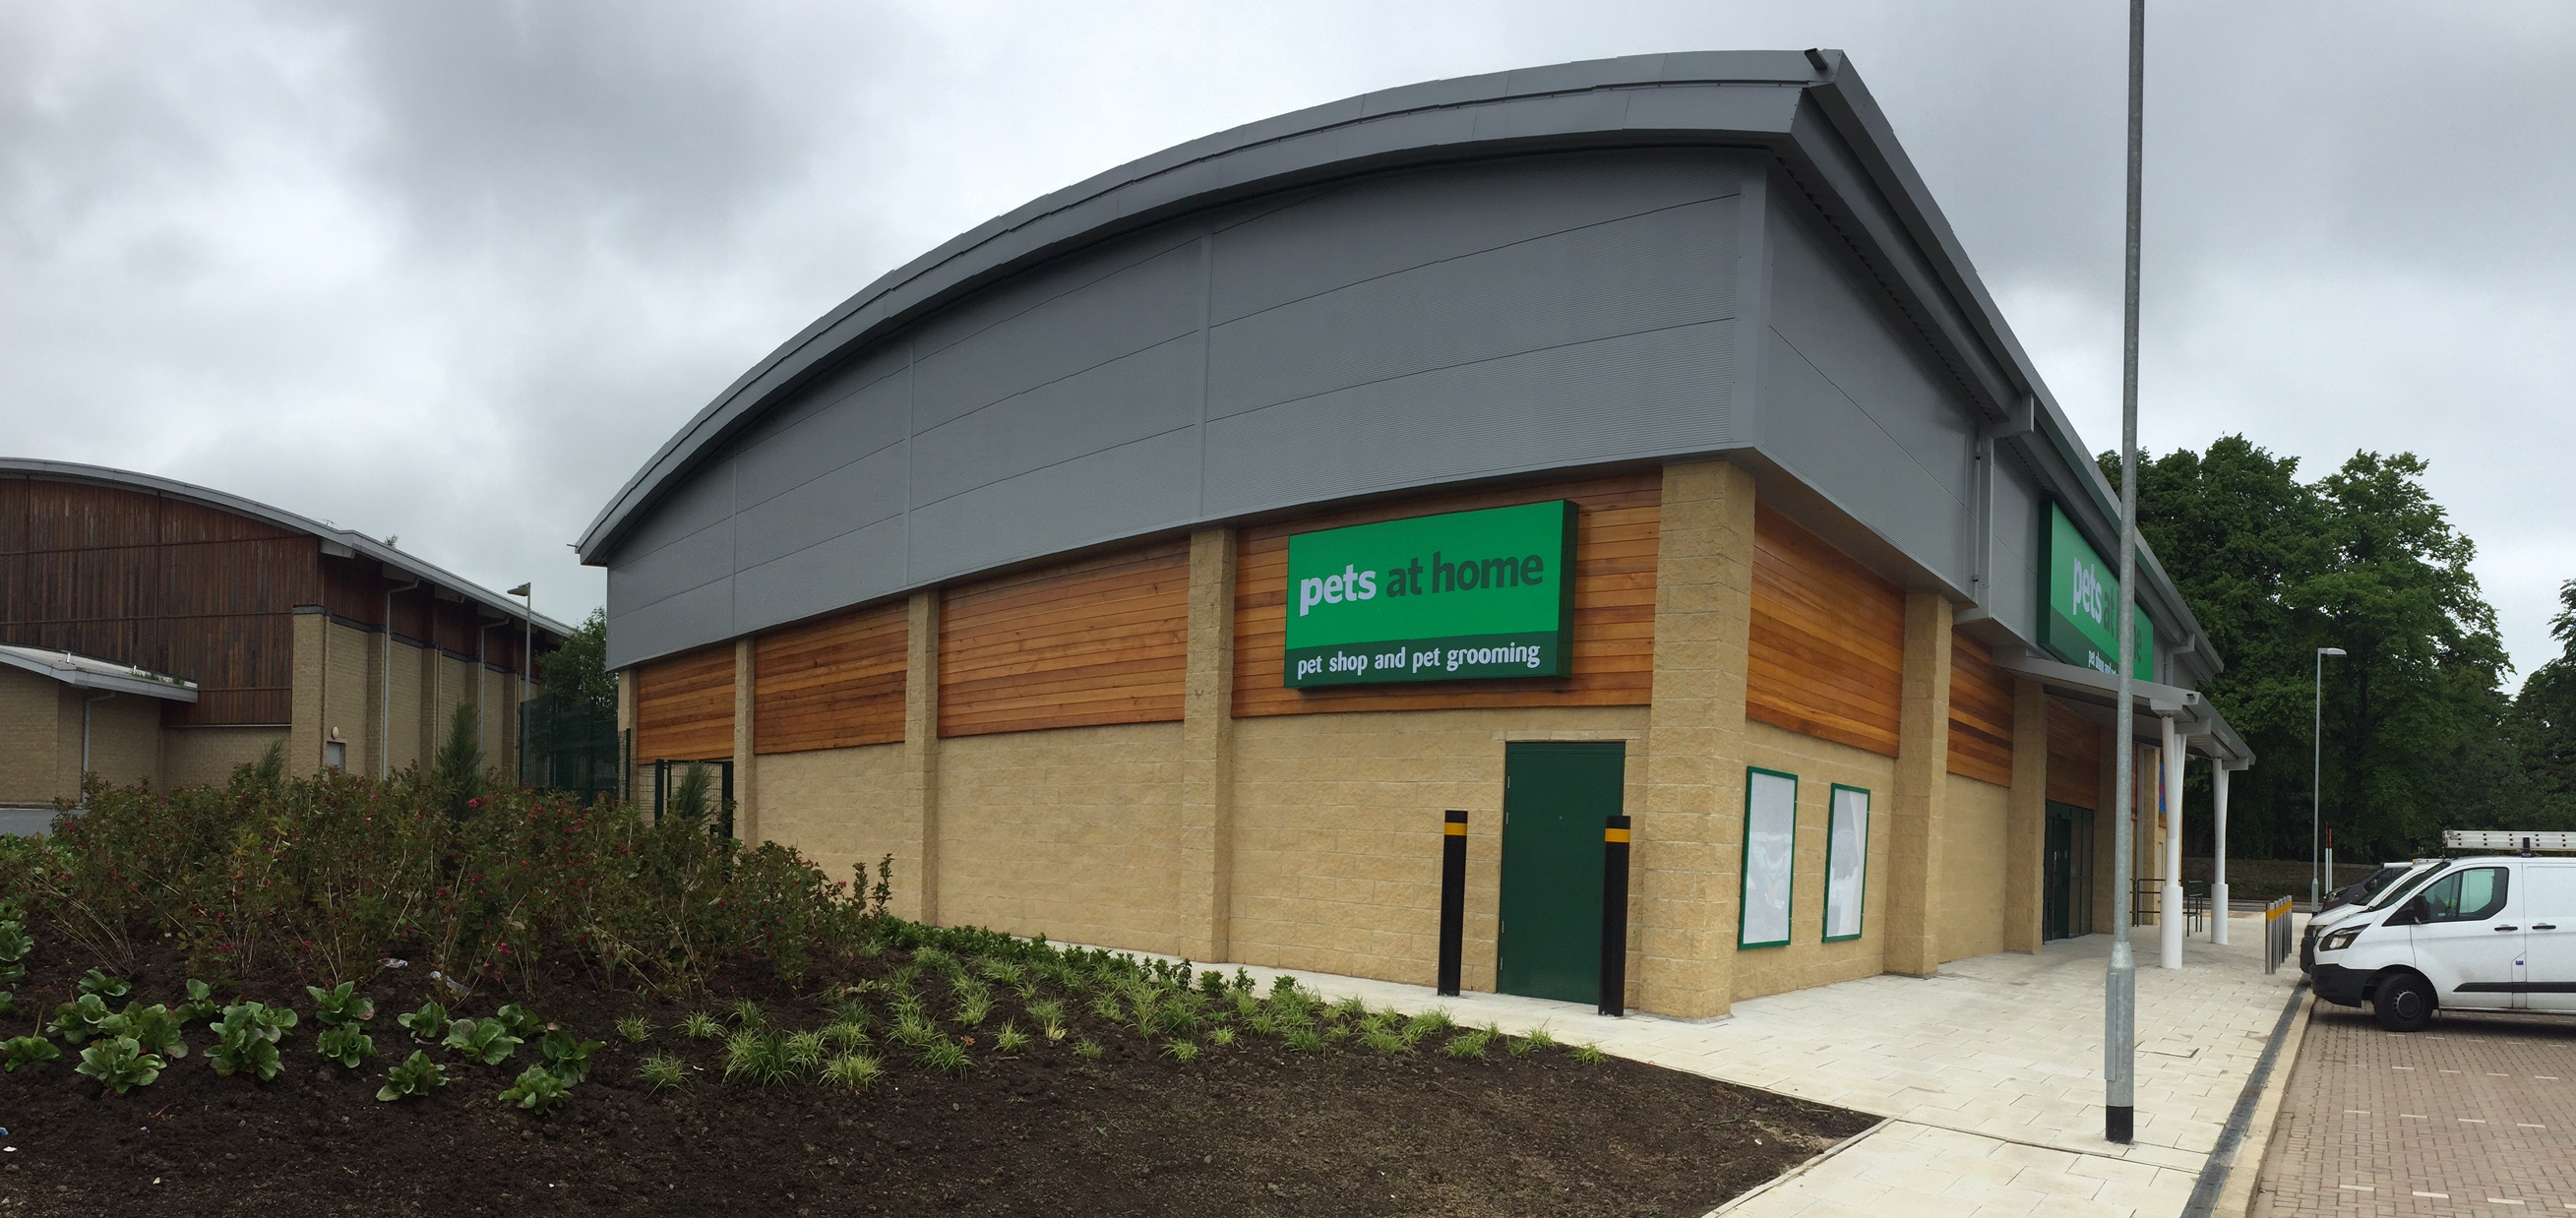 home retail new build pets at home store alnwick